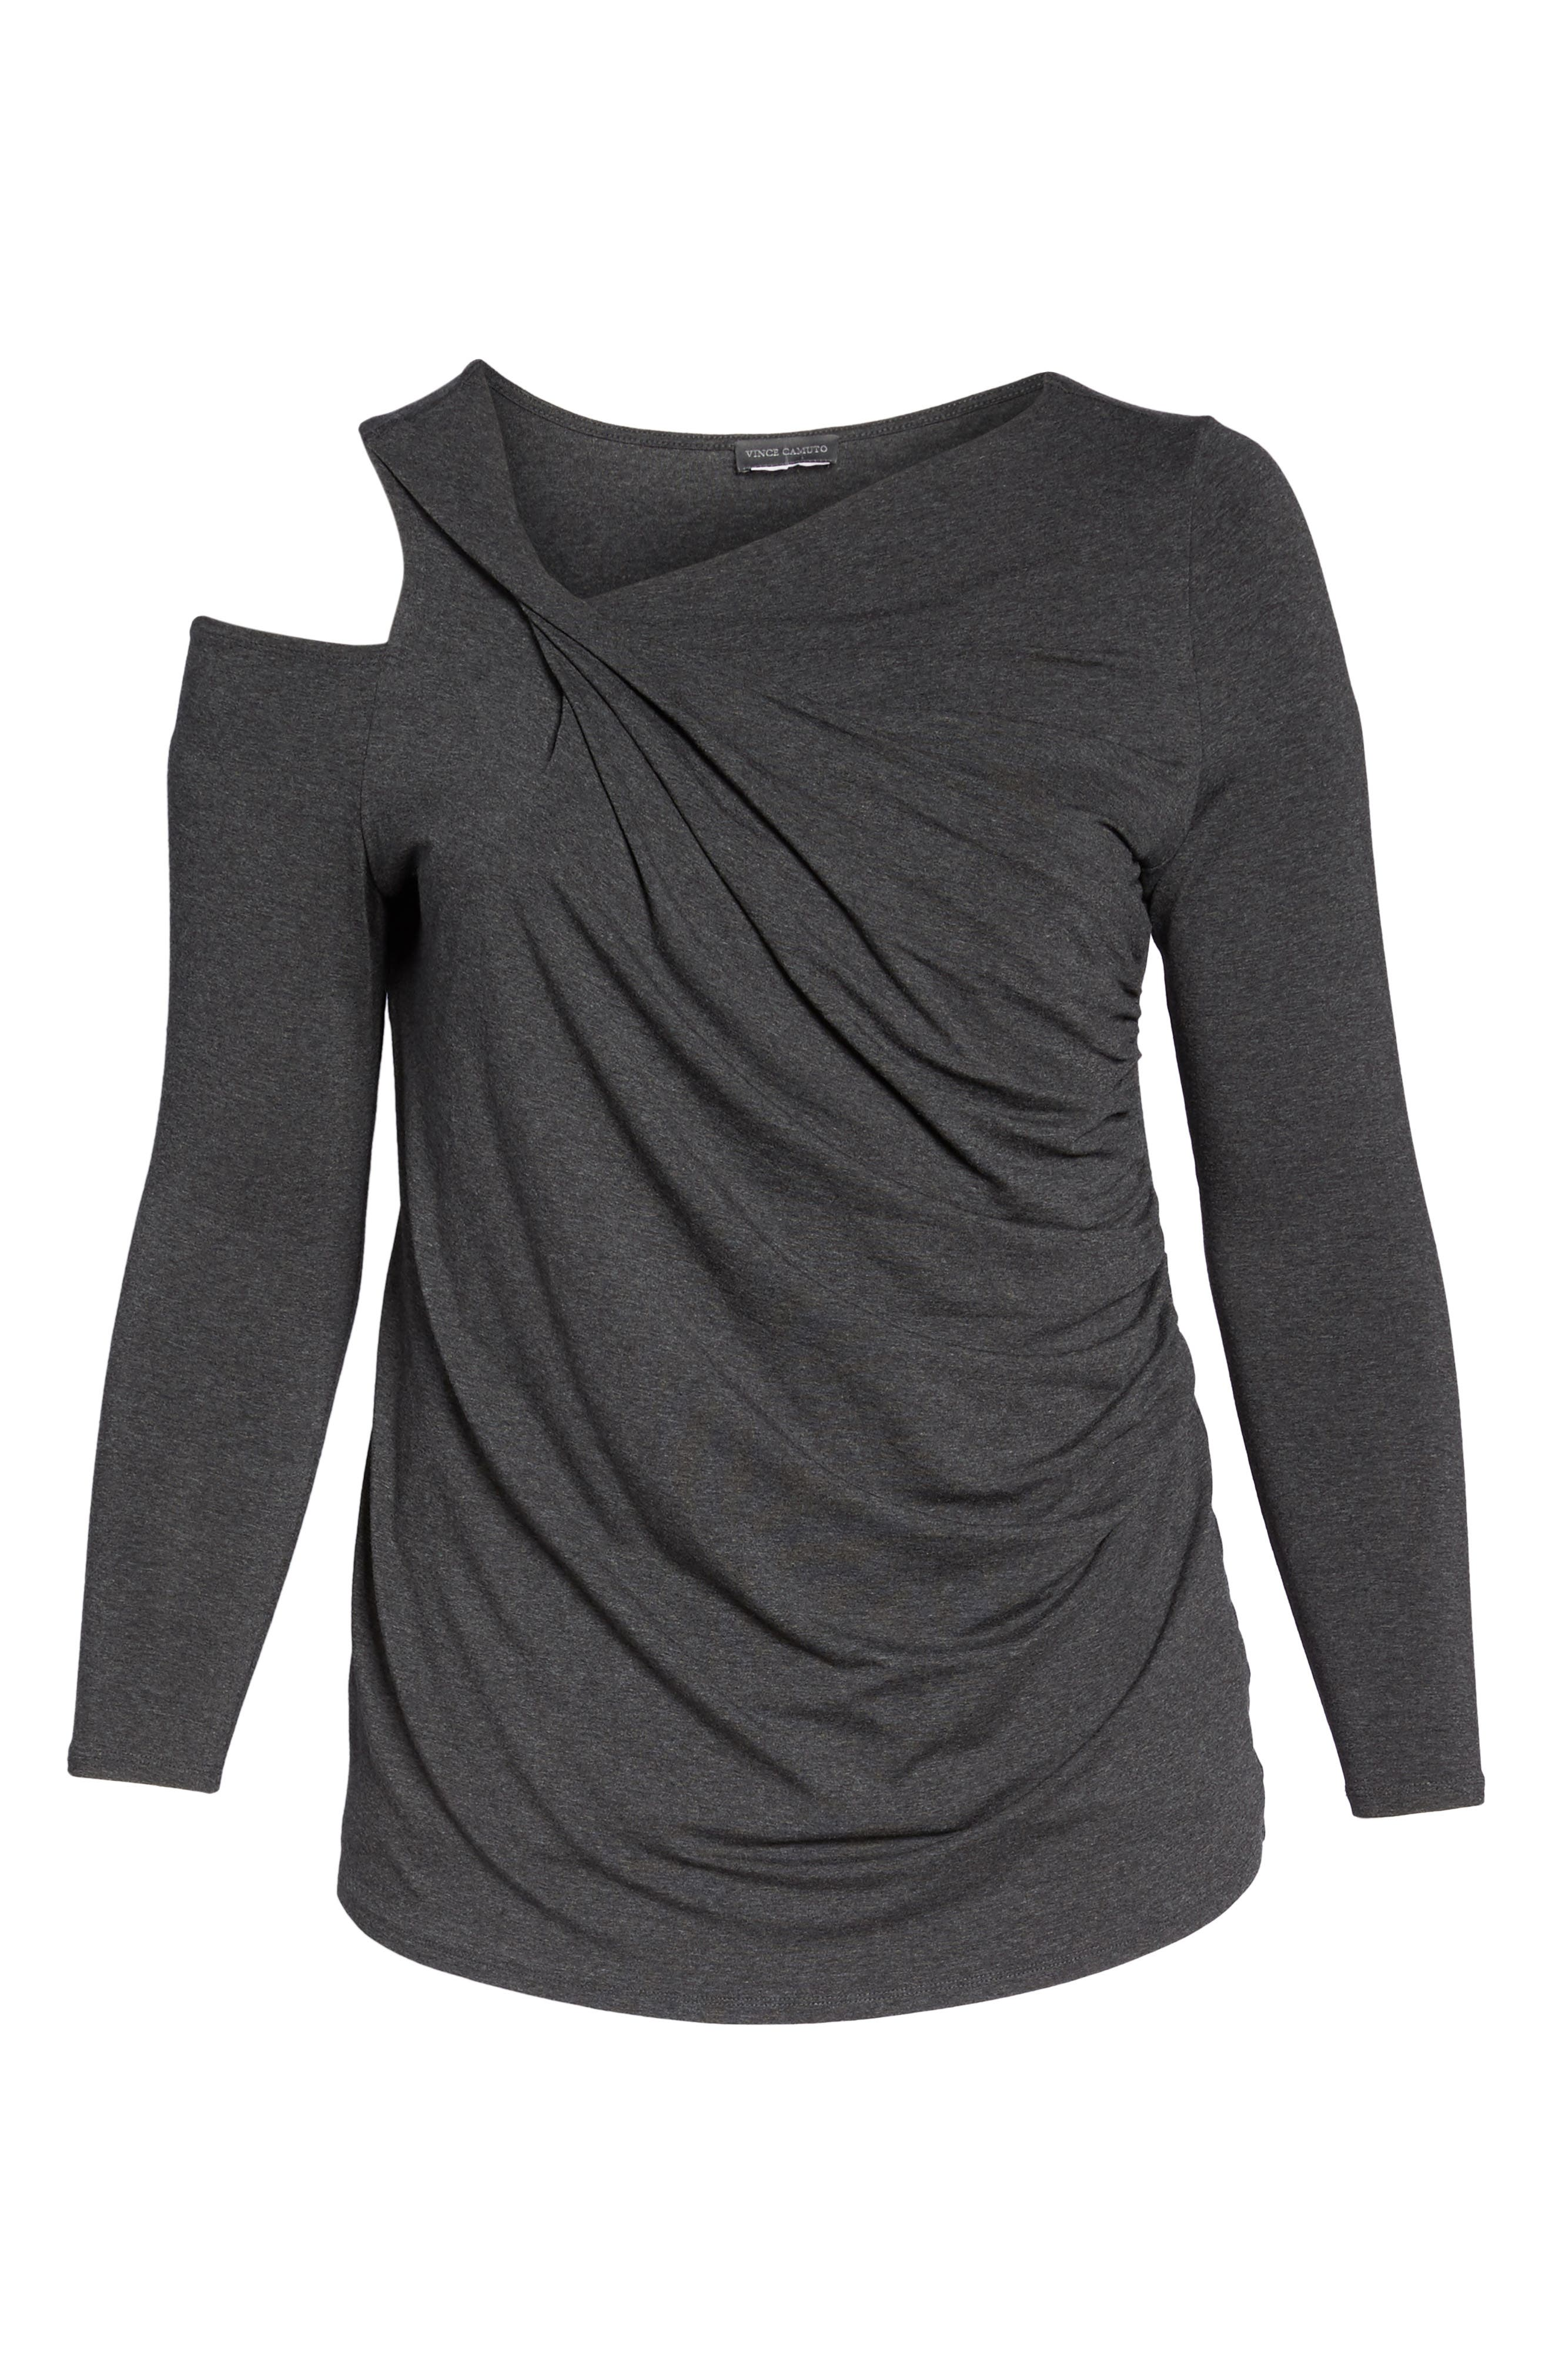 Twisted Cold Shoulder Top,                             Alternate thumbnail 6, color,                             023